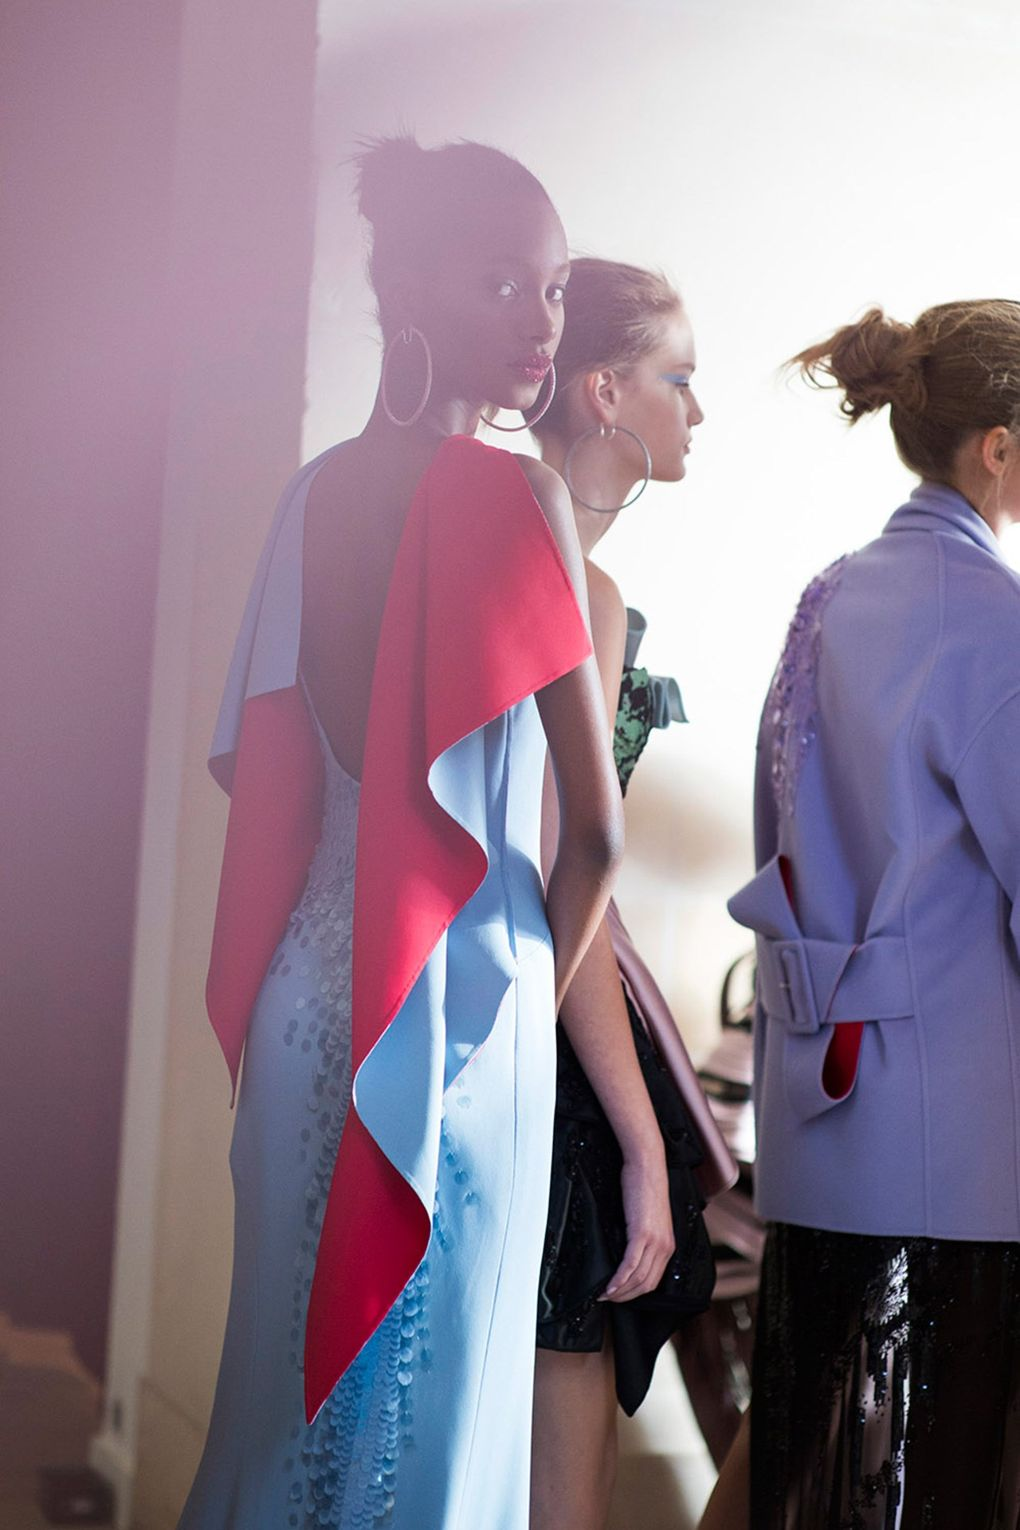 Why Donatella's couture designs won't be on the catwalk this weekend: https://t.co/Q9vozYHl4a https://t.co/KFpGH39u0J